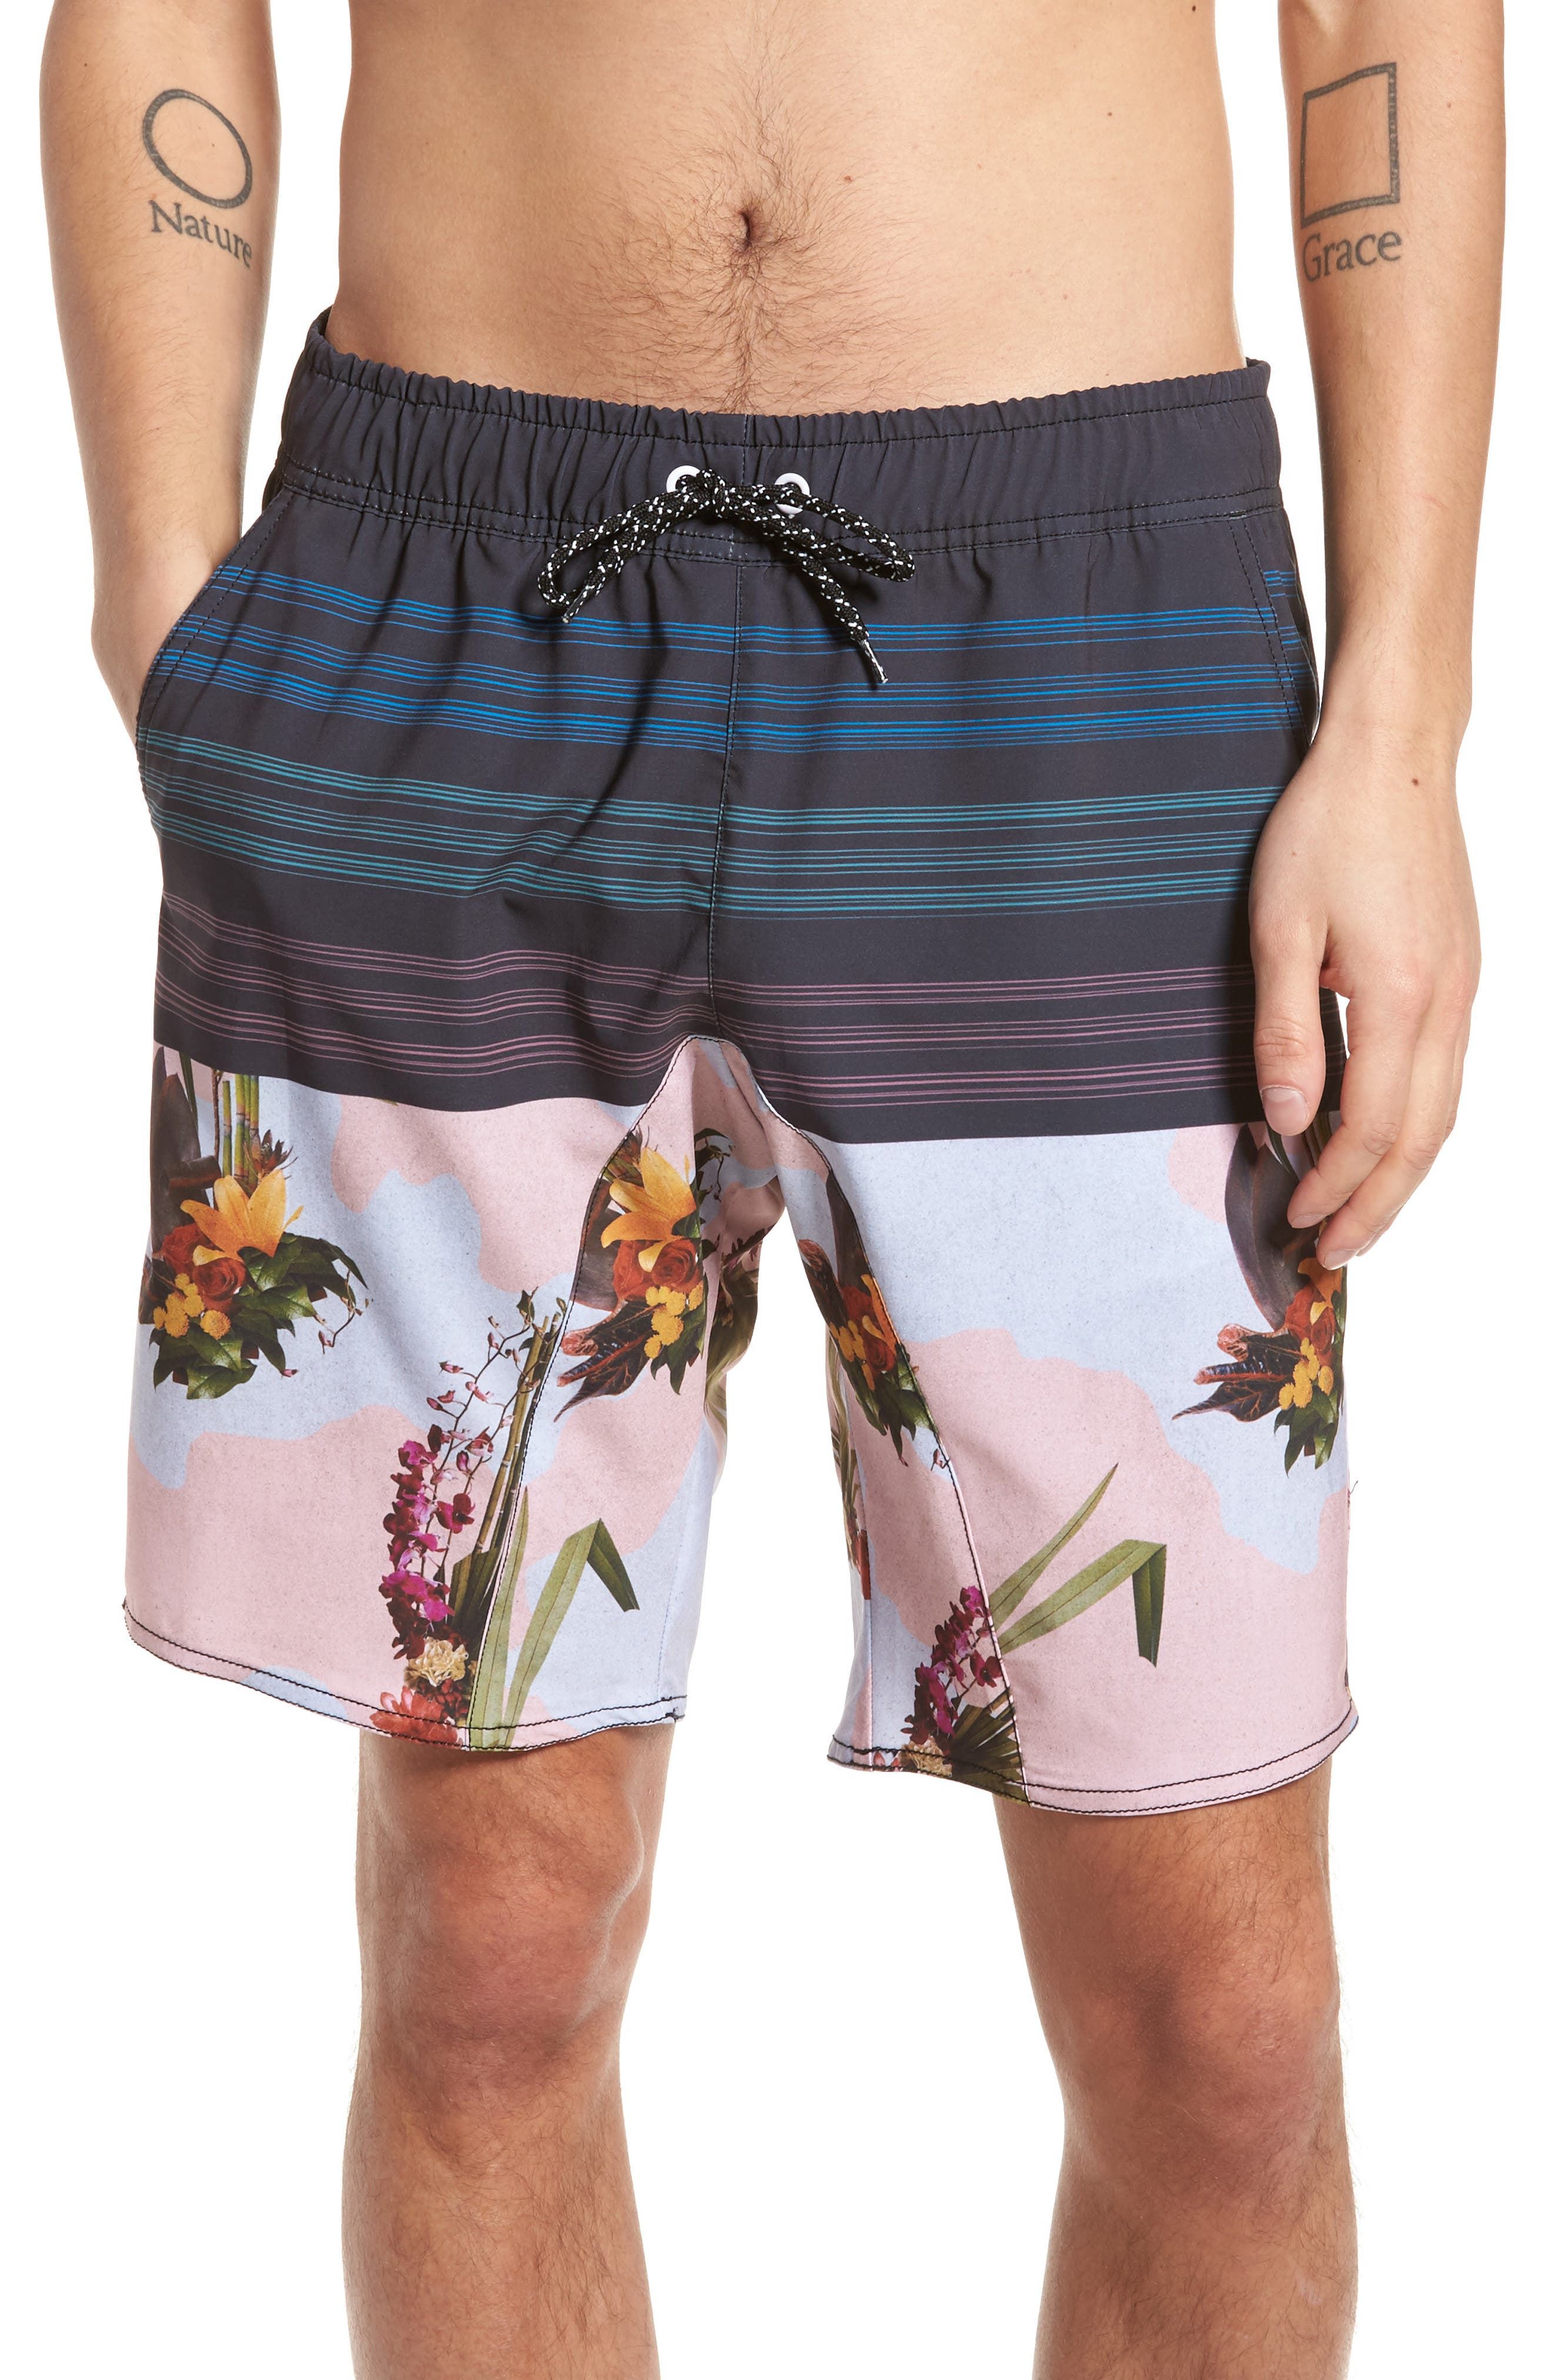 Oasis Swim Shorts,                             Main thumbnail 1, color,                             001